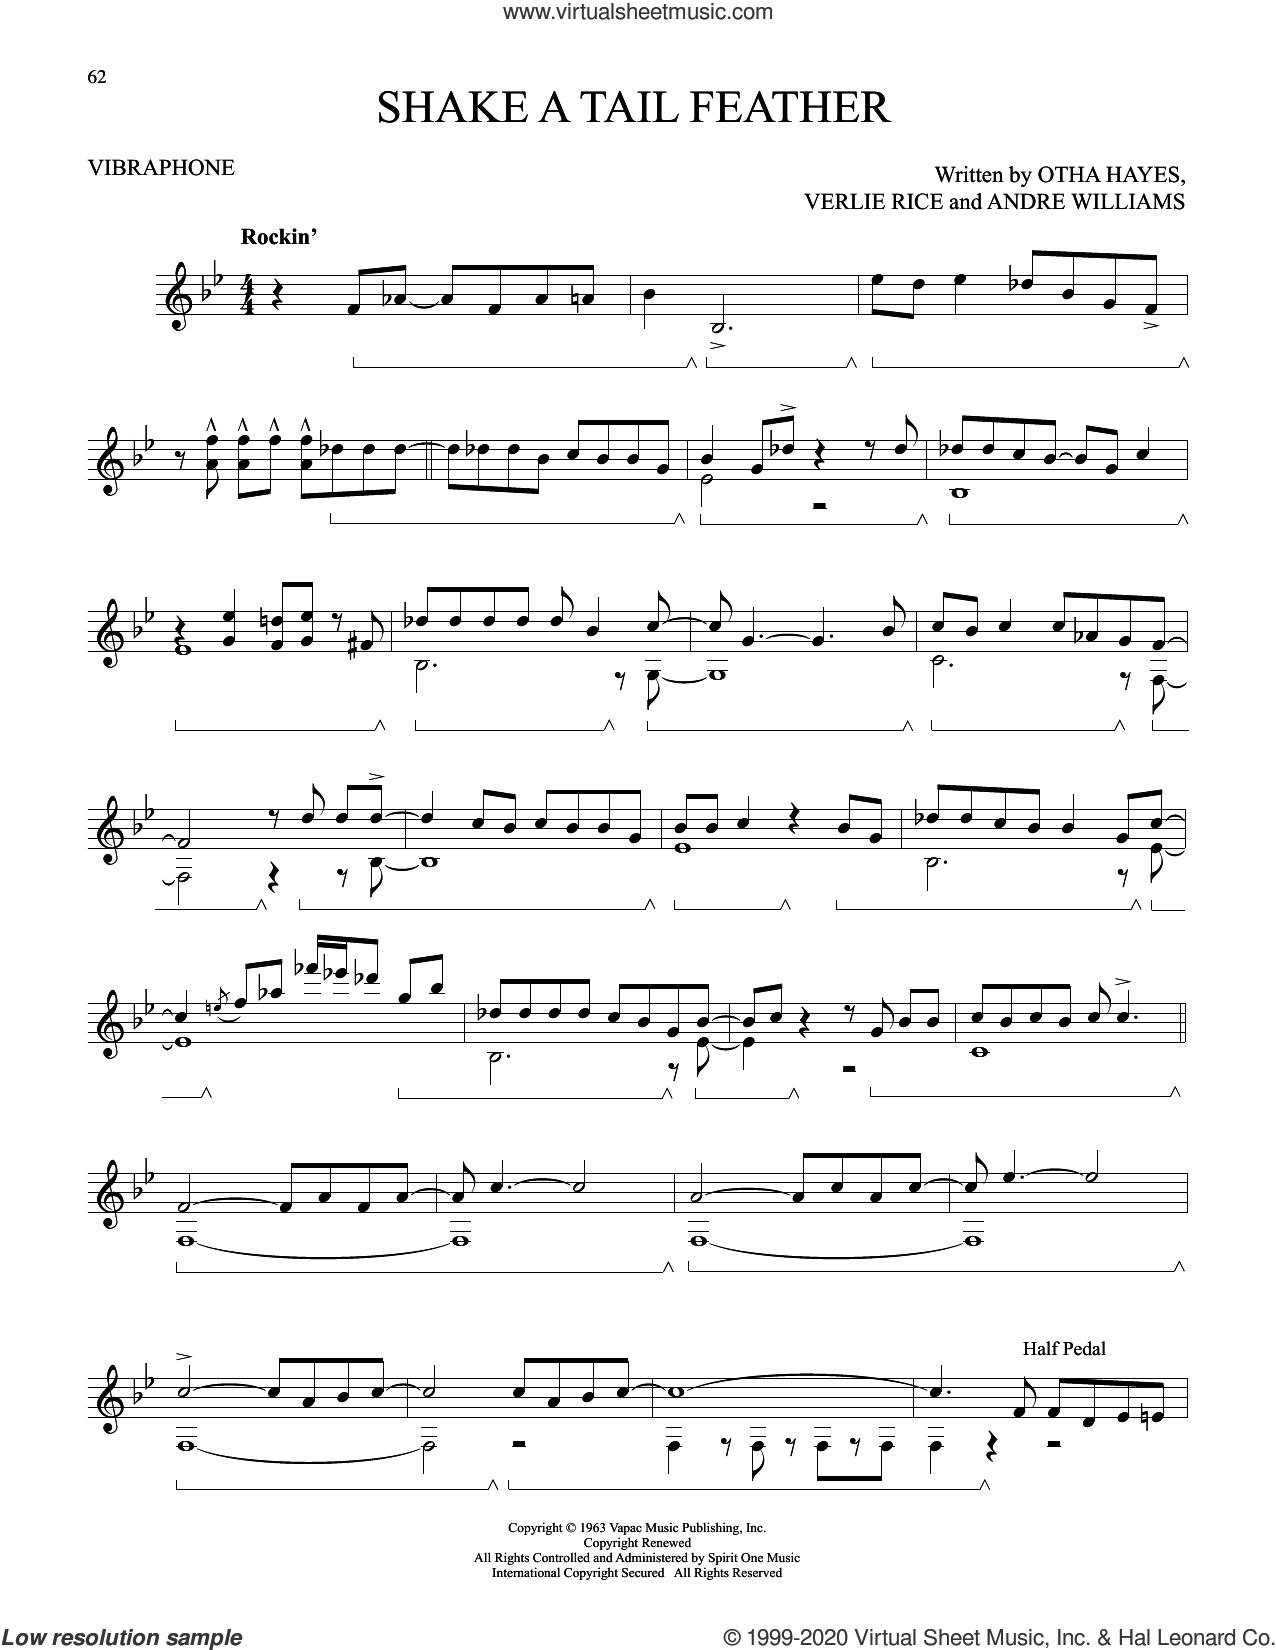 Shake A Tail Feather sheet music for Vibraphone Solo by The Five Du-Tones, Andre Williams, Otha M. Hayes and Verlie Rice, intermediate skill level